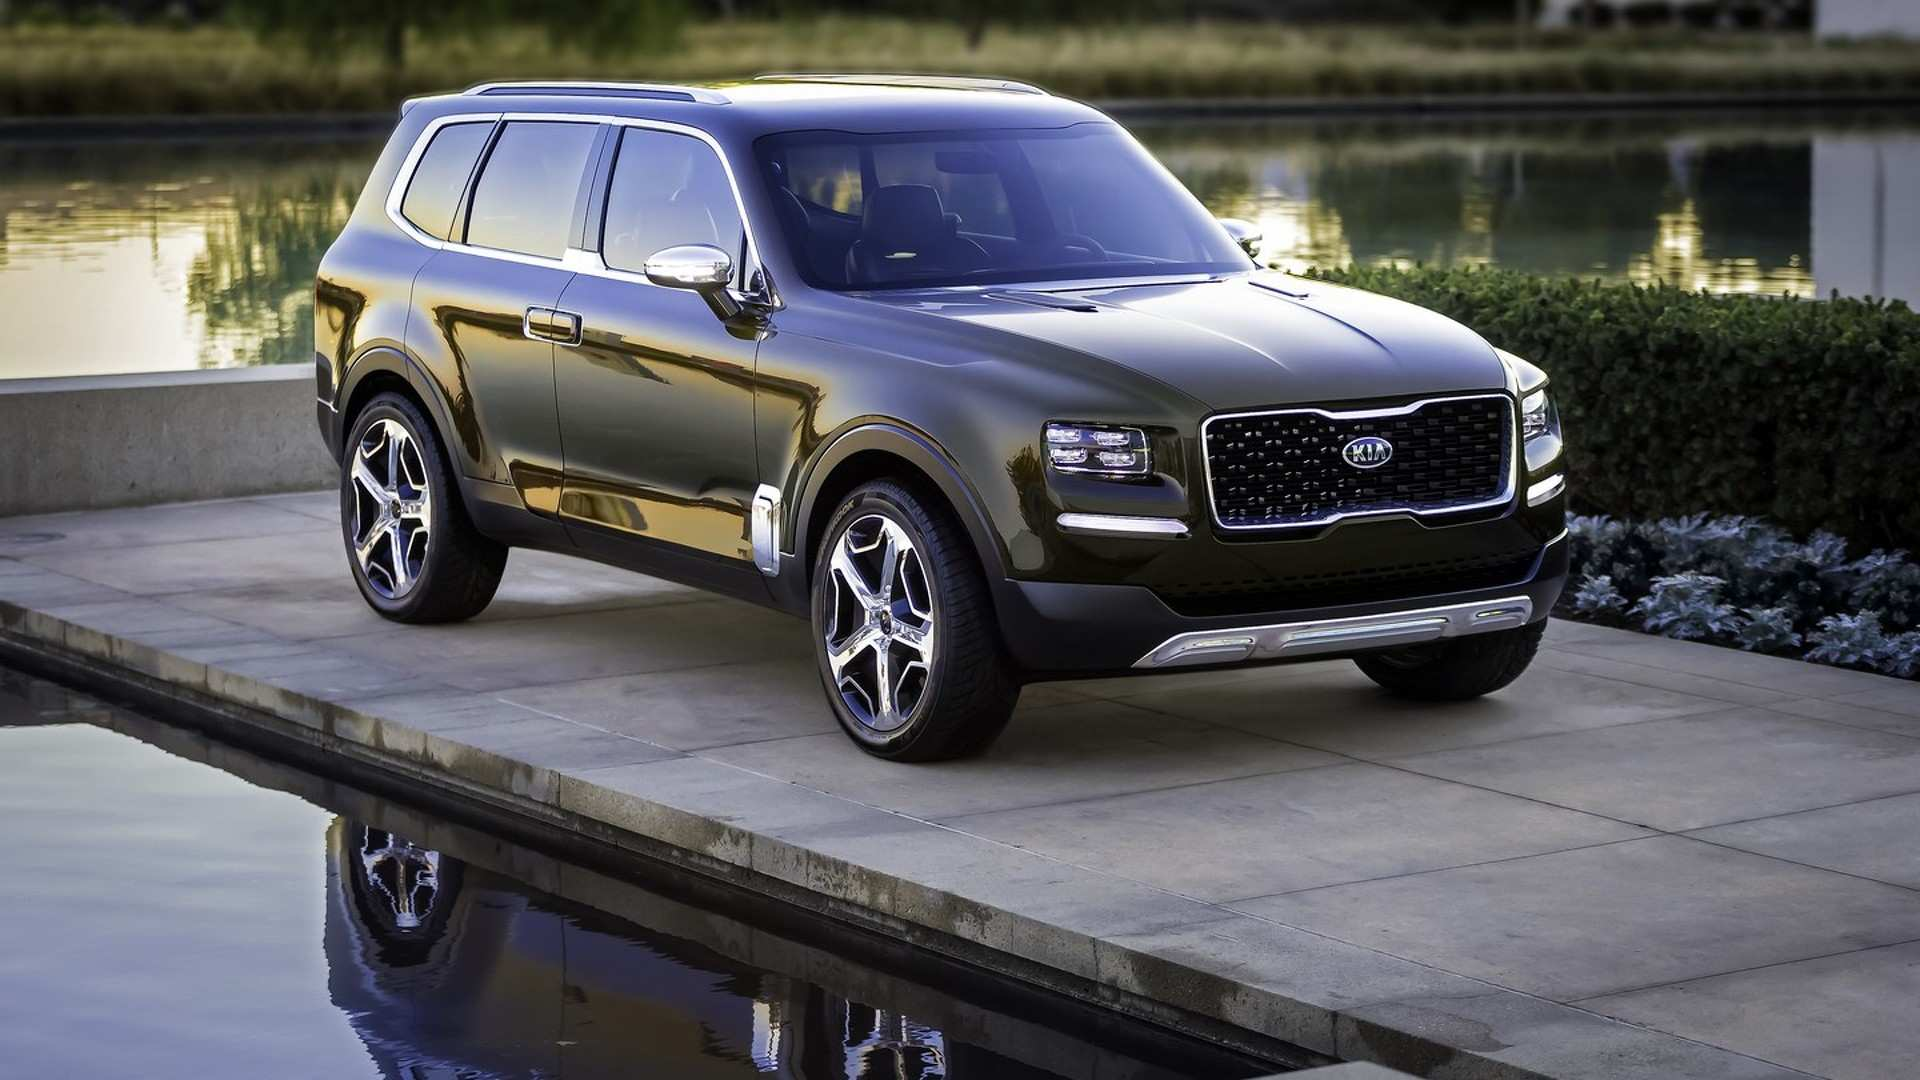 81 The Kia New Suv 2020 Engine